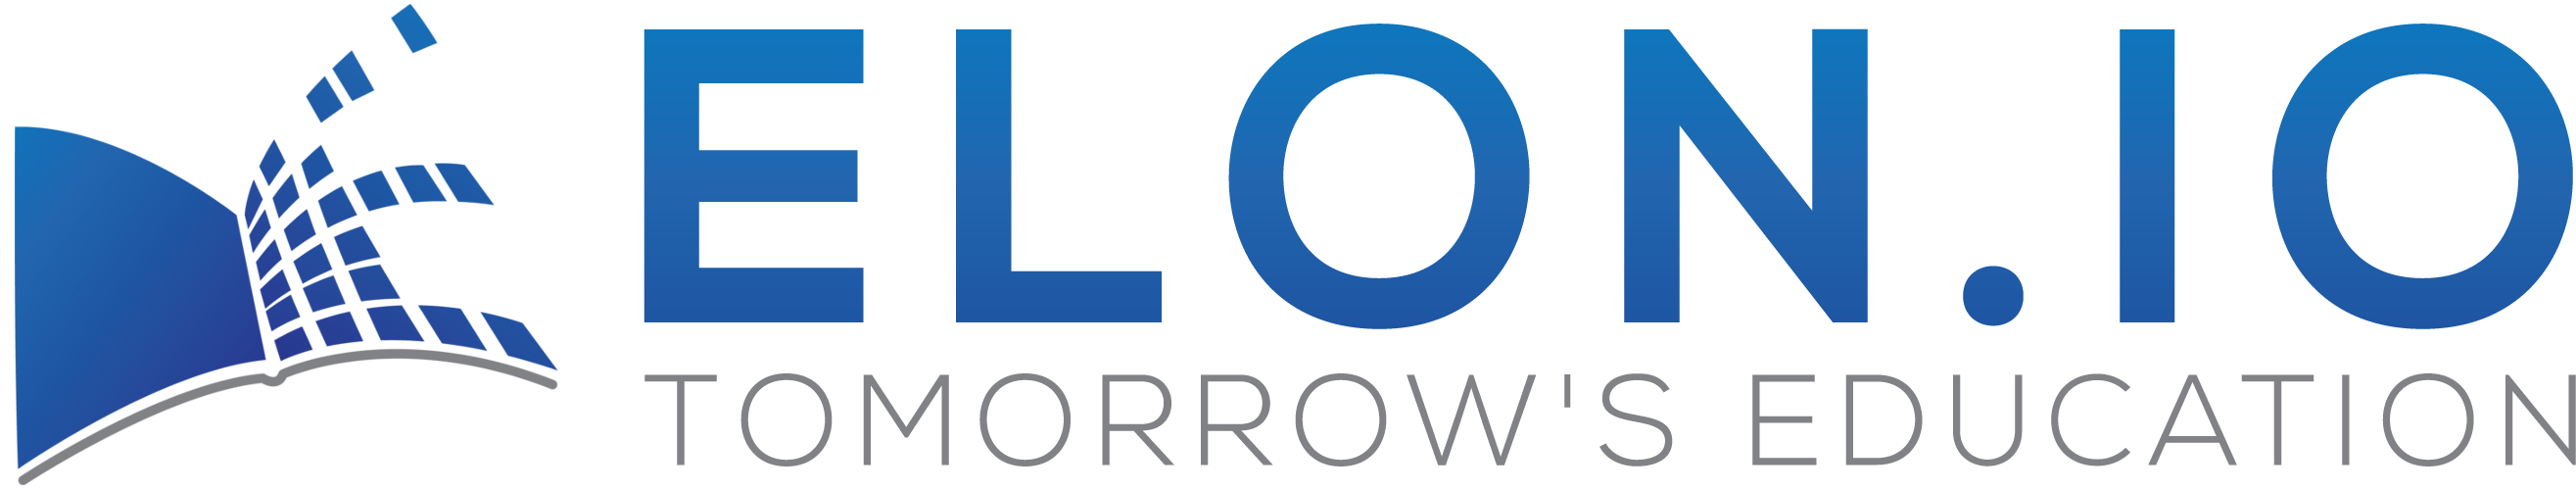 Elon.io - Tomorrow's Education